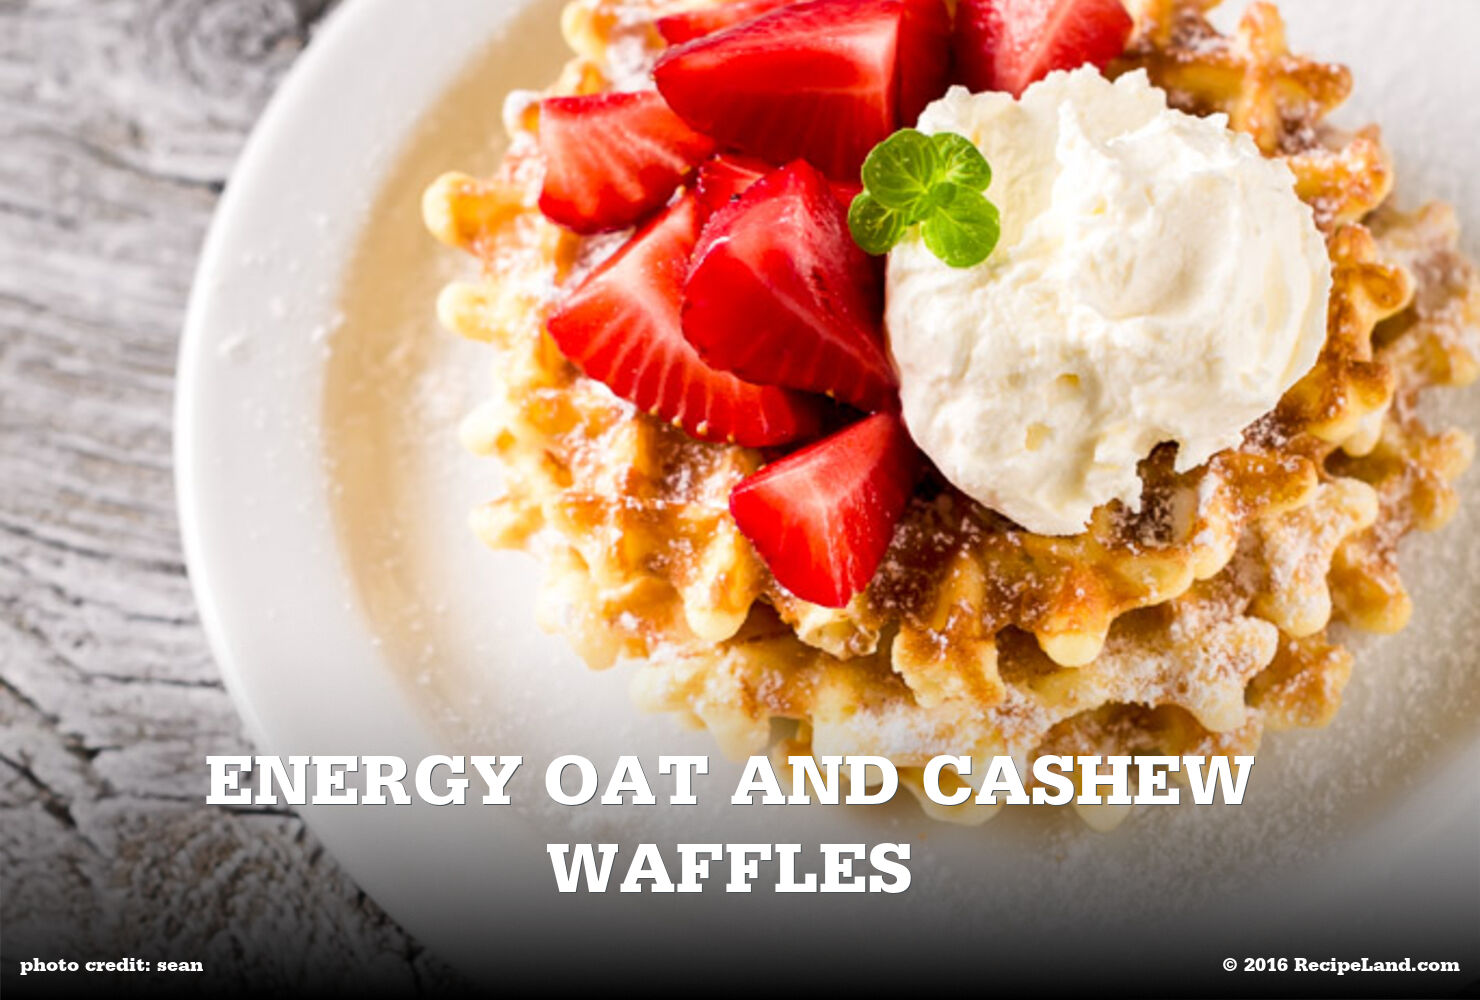 Energy Oat and Cashew Waffles